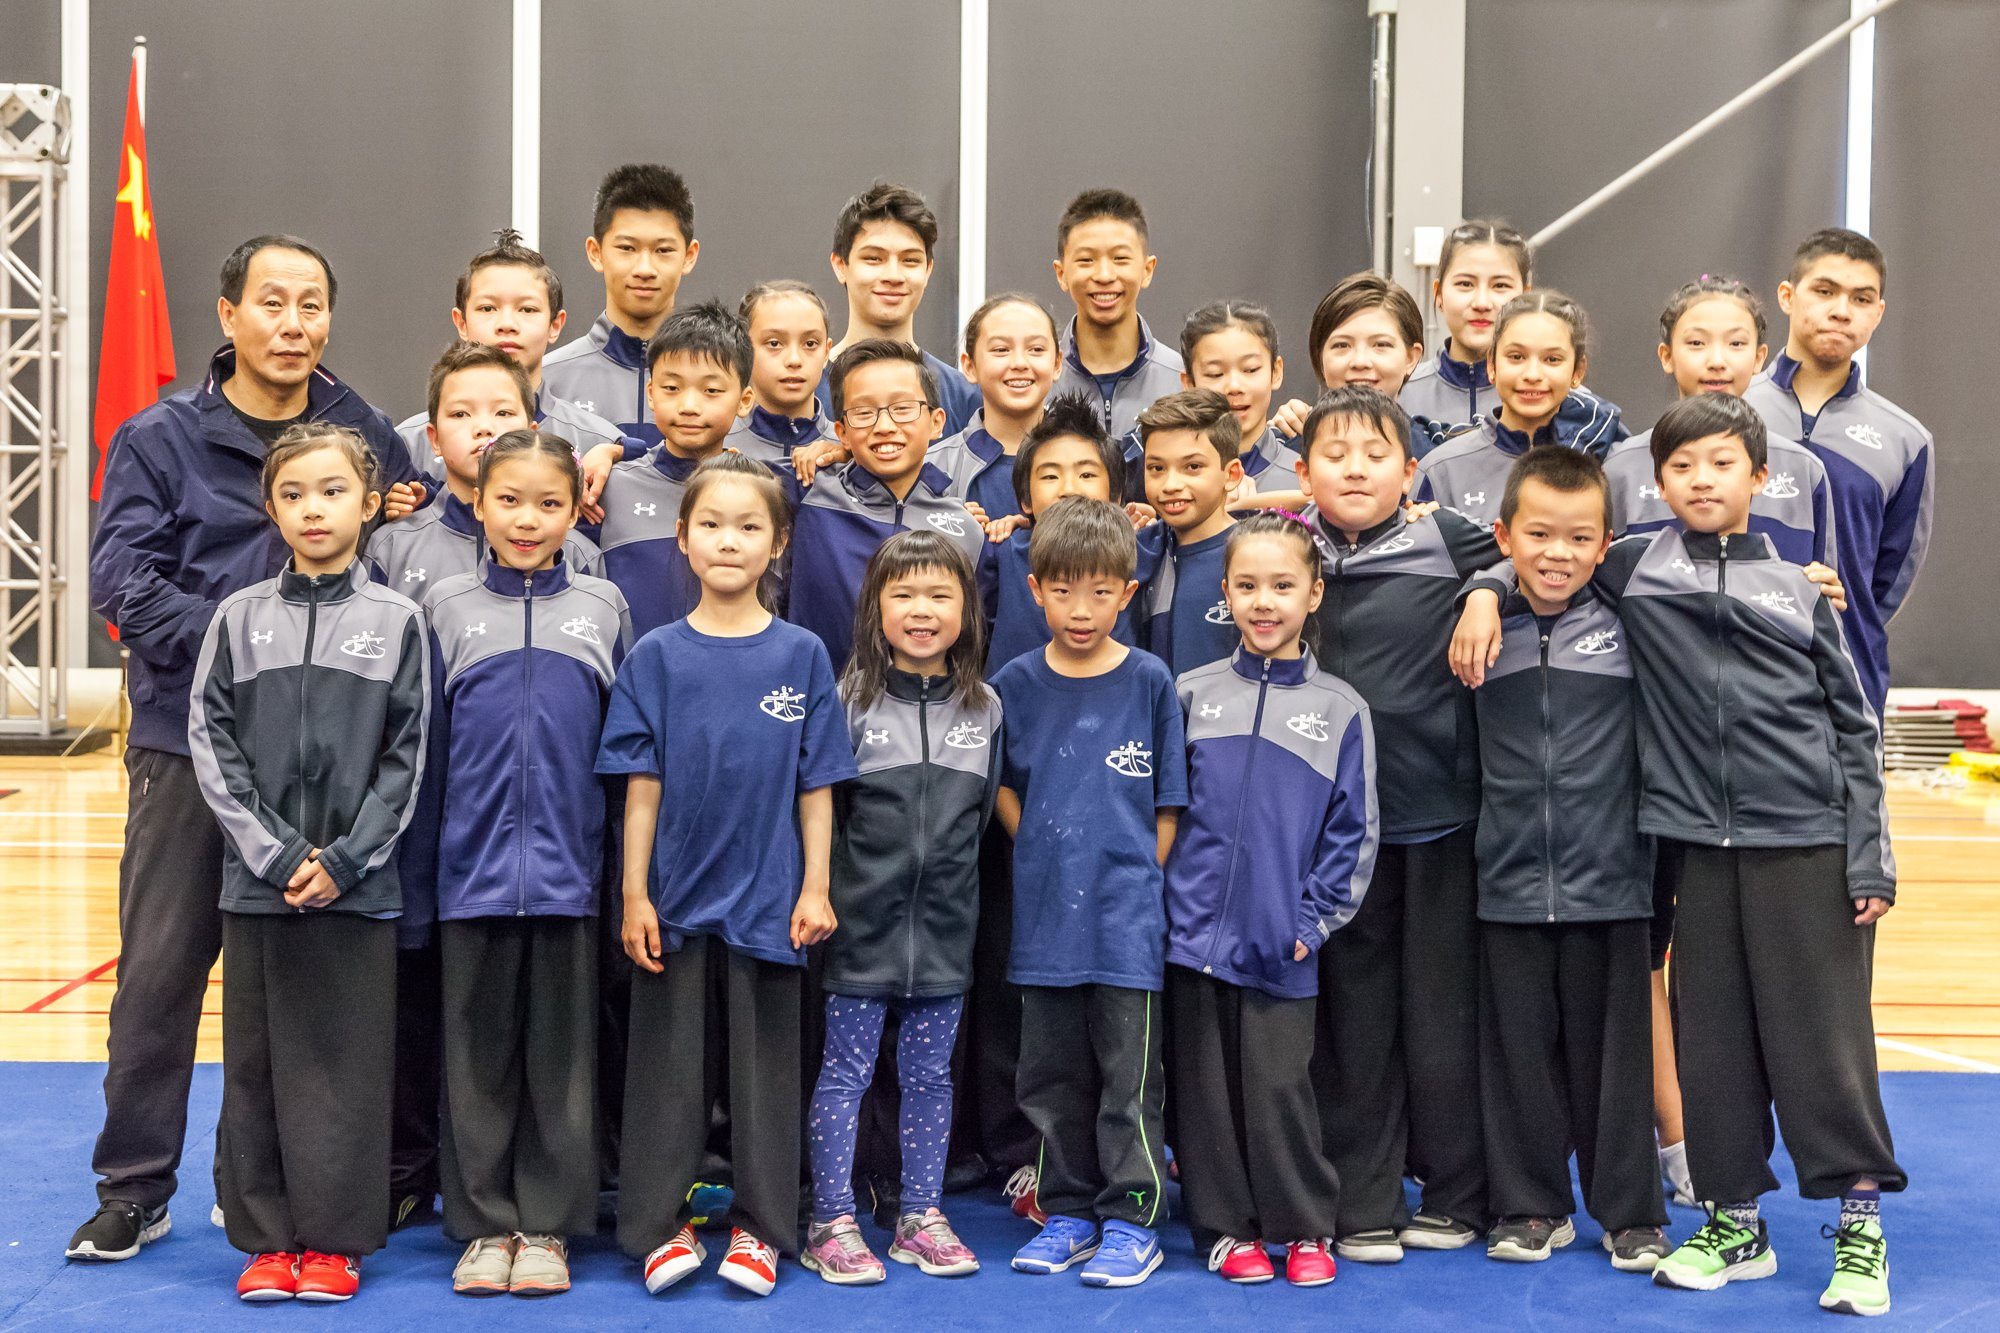 The 2017 Wayland Li competition team at the Markham Pan Am Centre.